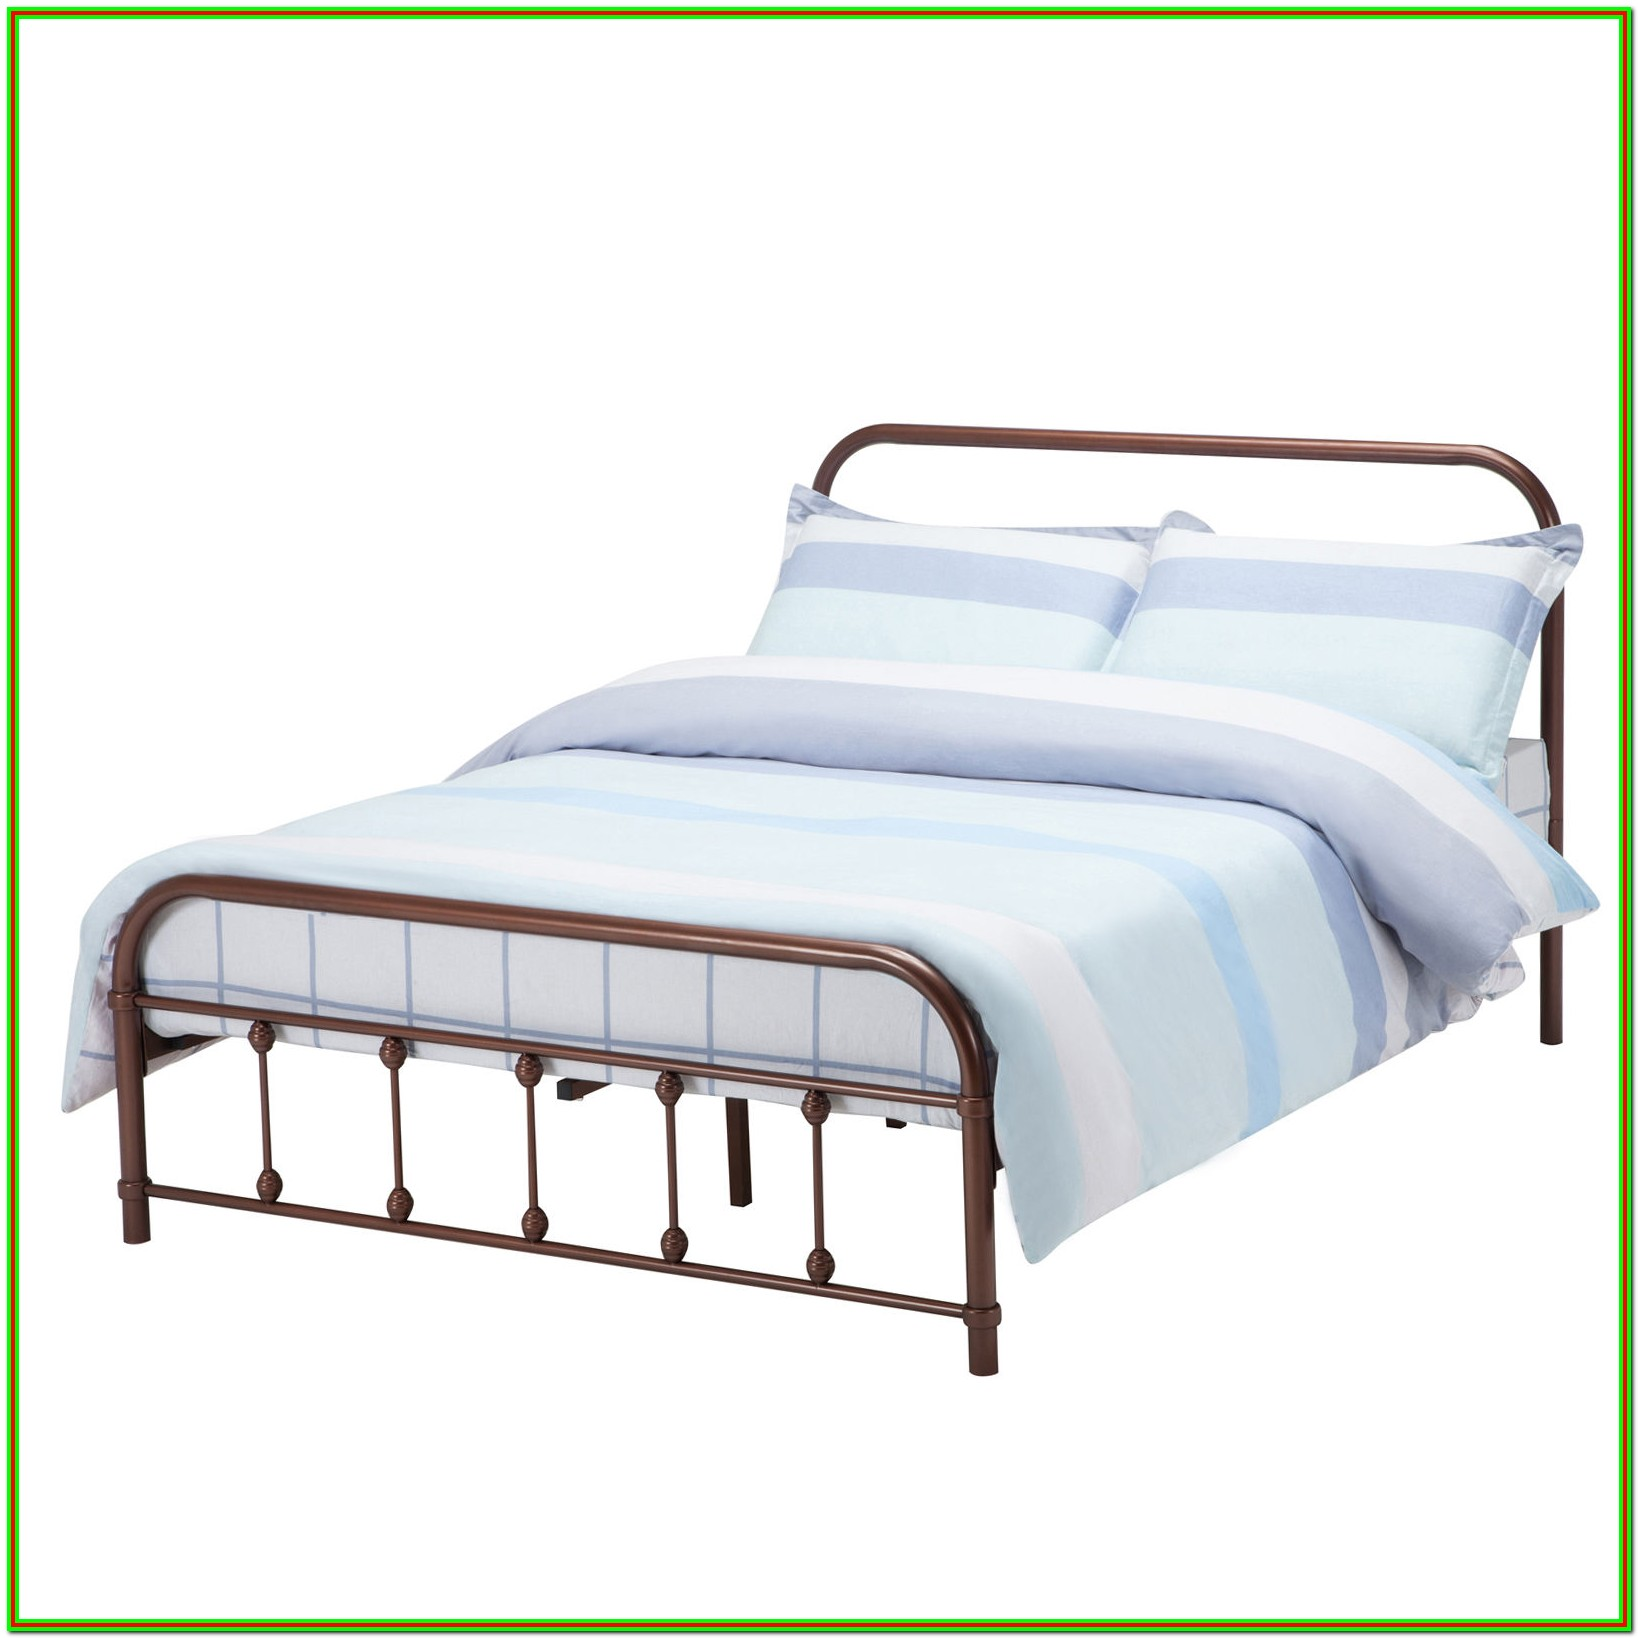 Full Size Metal Bed Frame With Headboard And Footboard